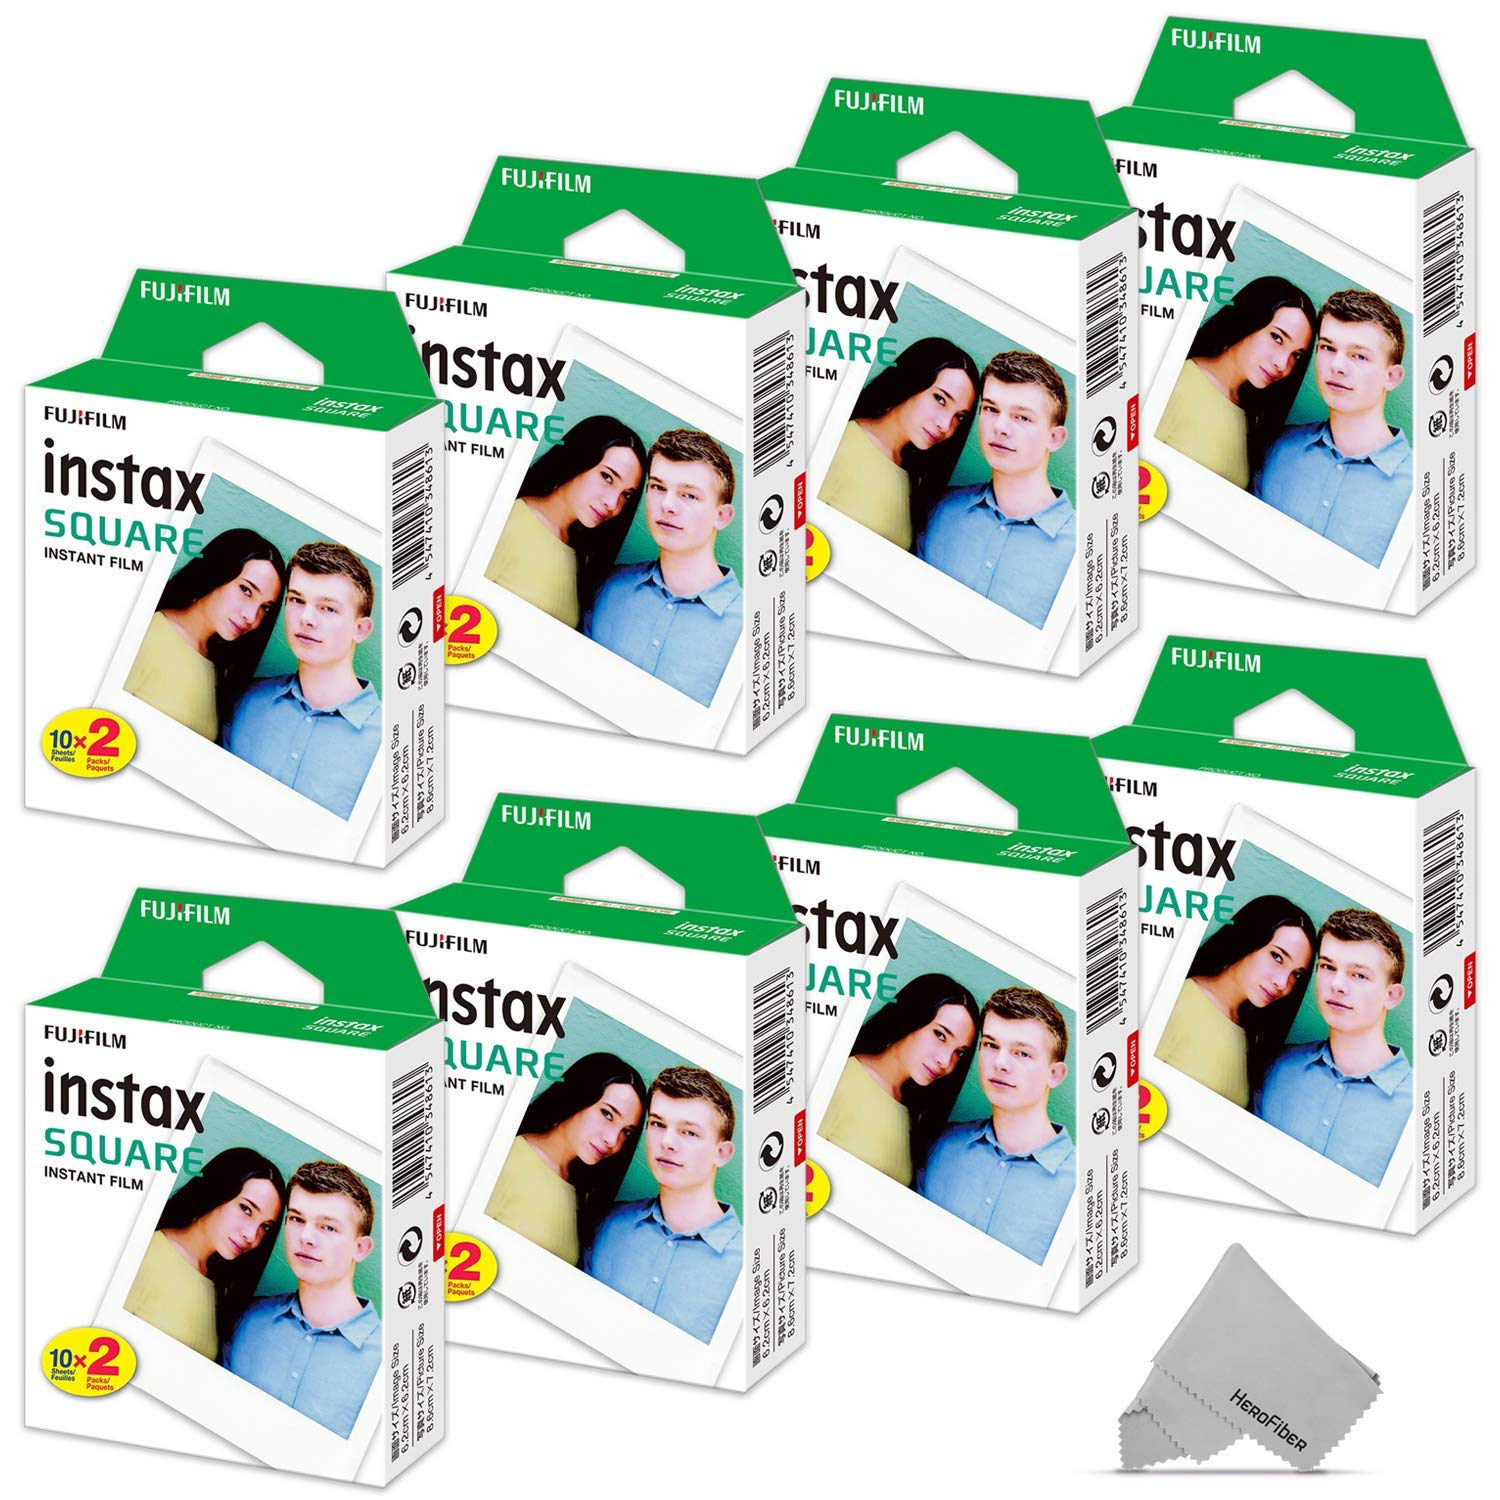 FujiFilm Instax Square Instant Film 8 Twin Pack of 160 Photo Sheets - Compatible with FujiFilm Instax Square SQ6, SQ10 and SQ20 Instant Cameras by HeroFiber